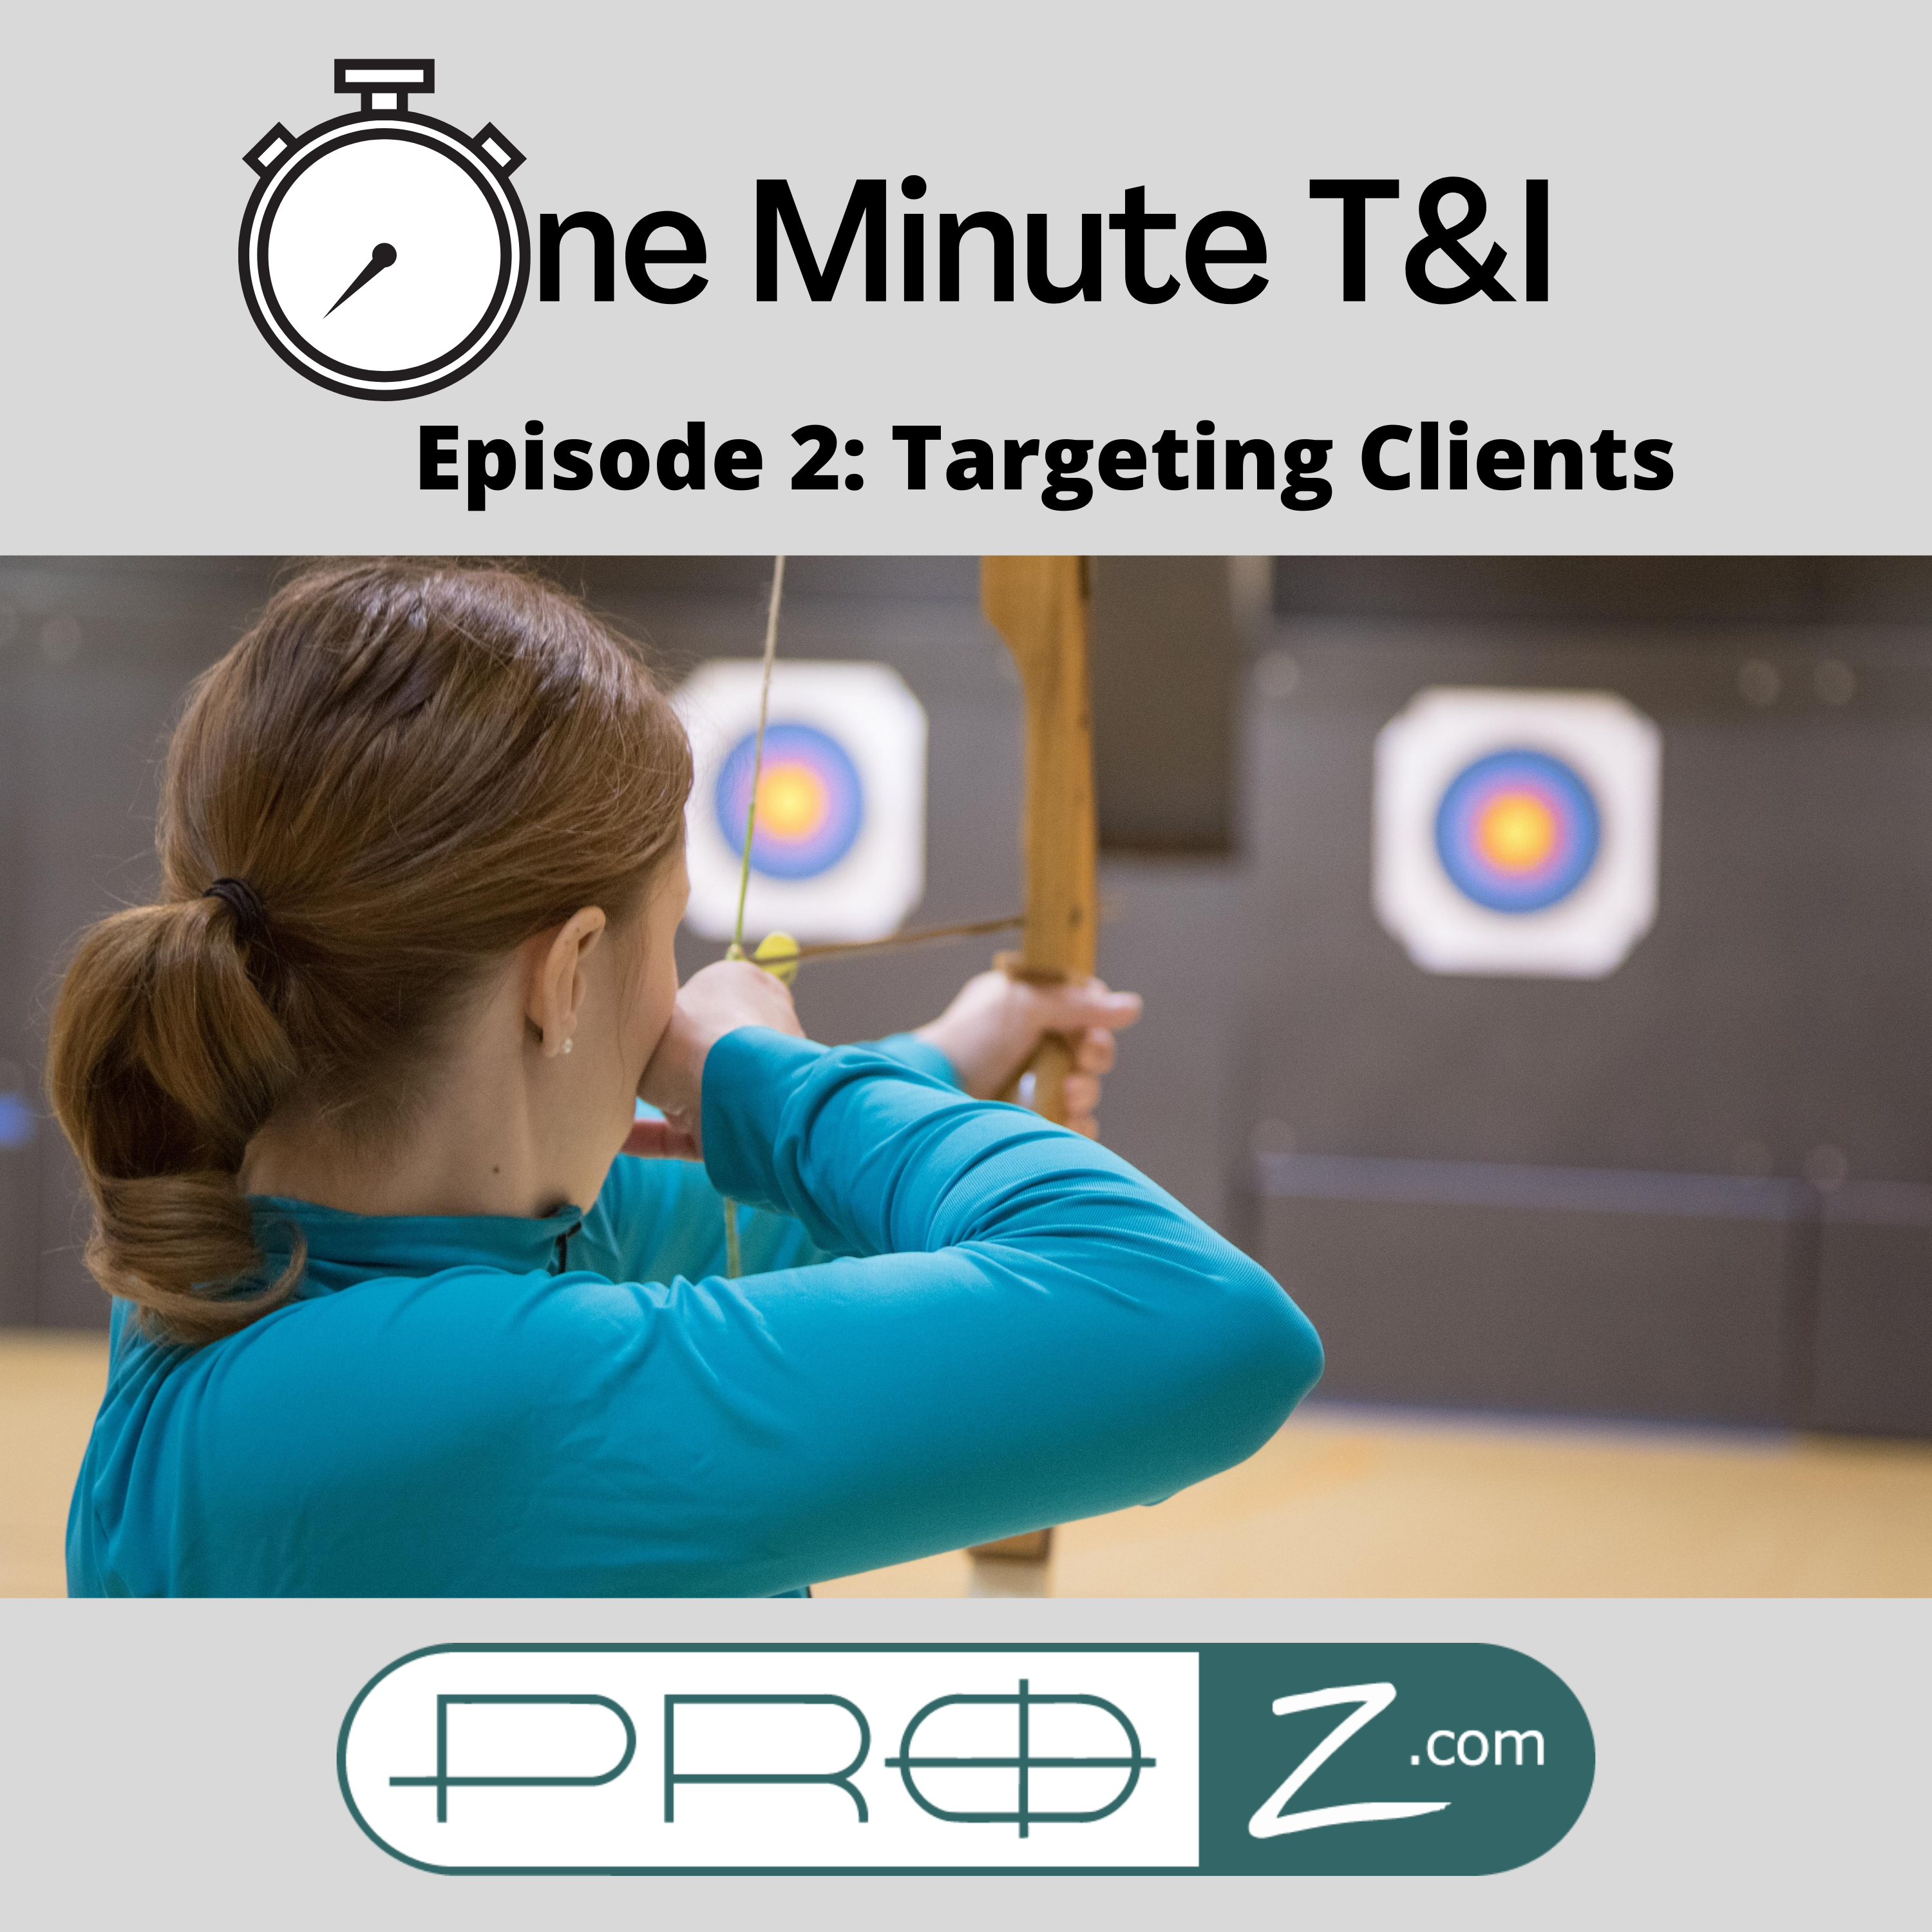 OTI 2 Targeting Clients